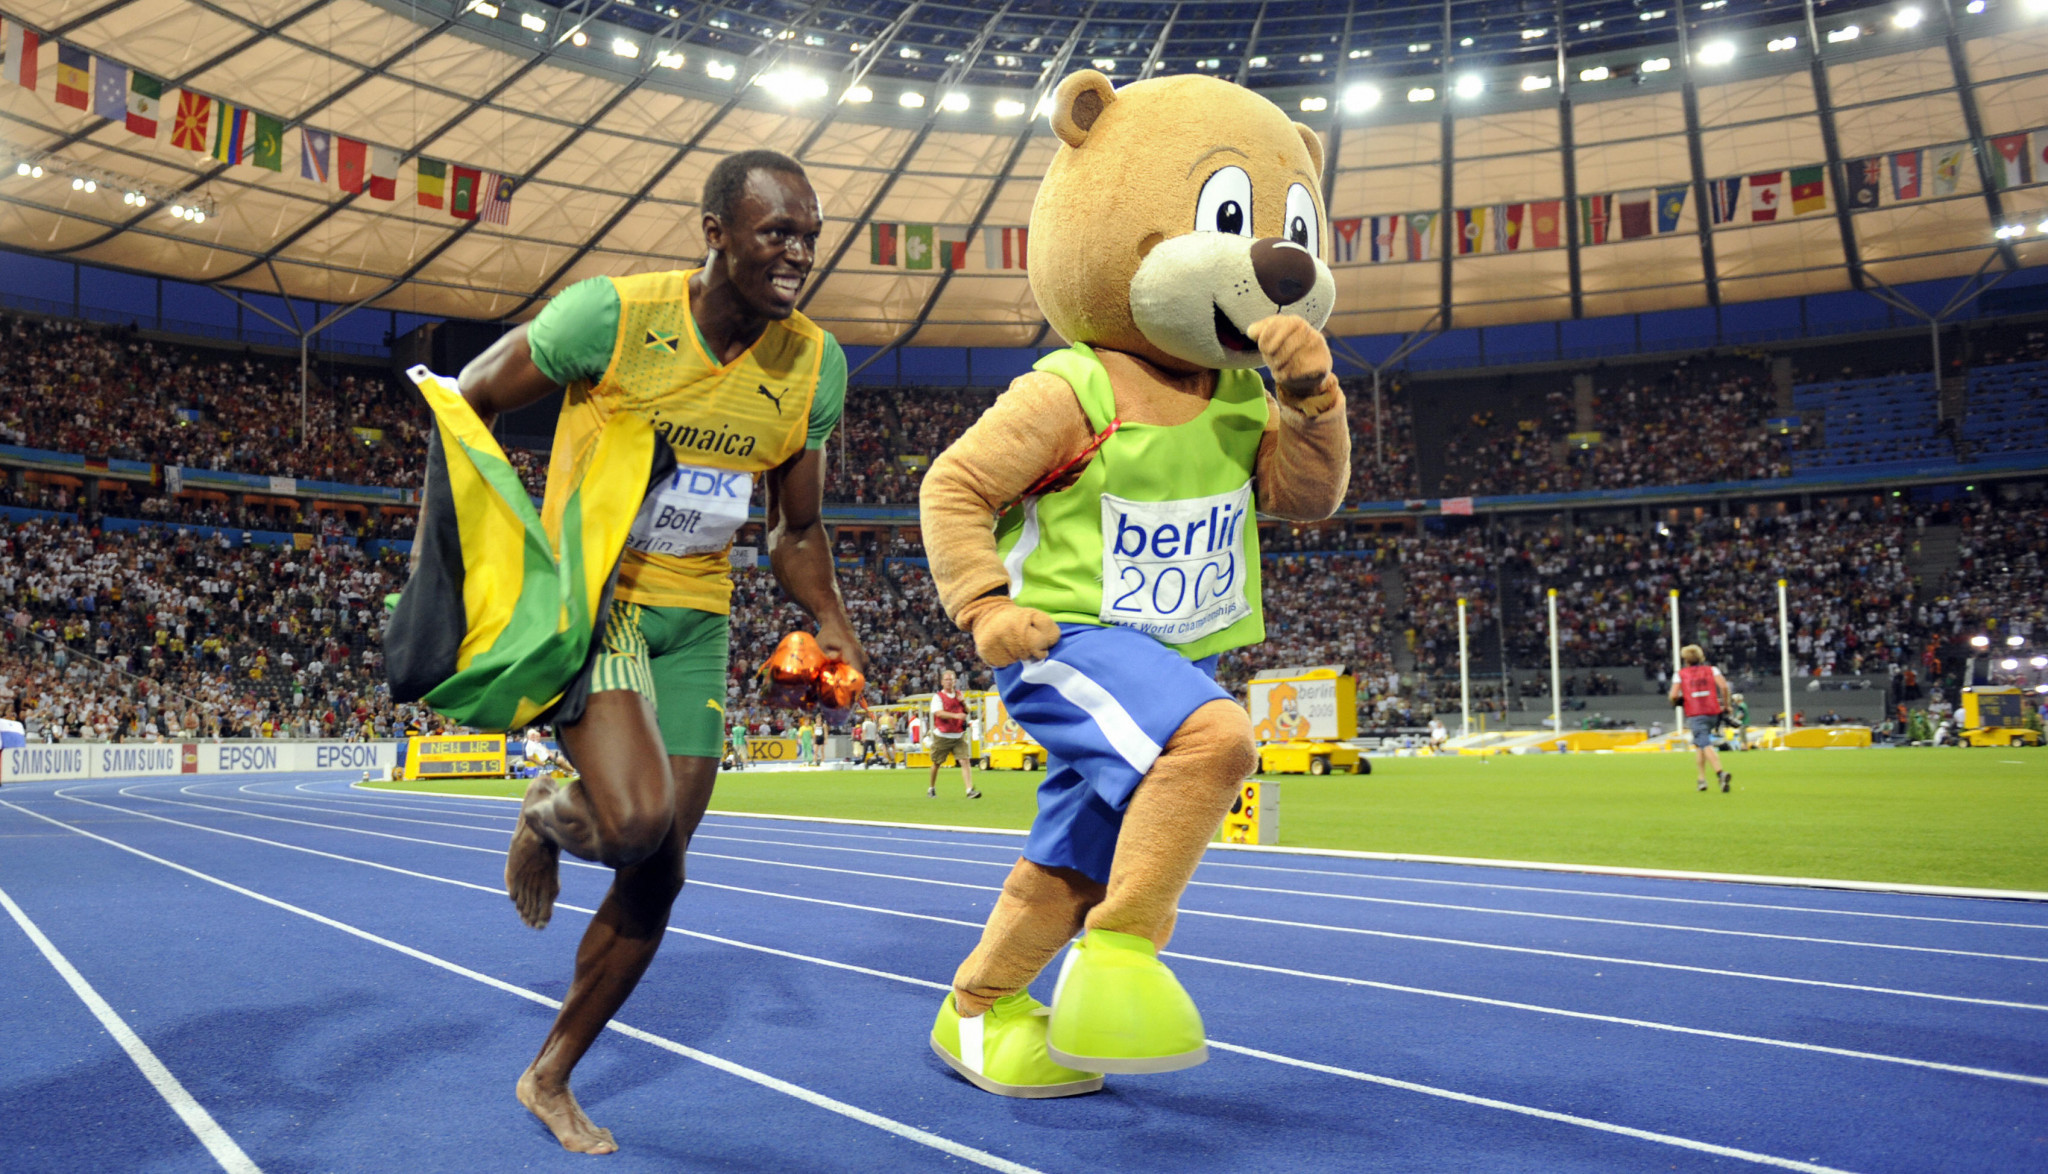 Frank Hensel was in charge of the brilliantly successful 2009 World Championships in Berlin where Usain Bolt, left, set world records in the 100m and 200m ©Getty Images